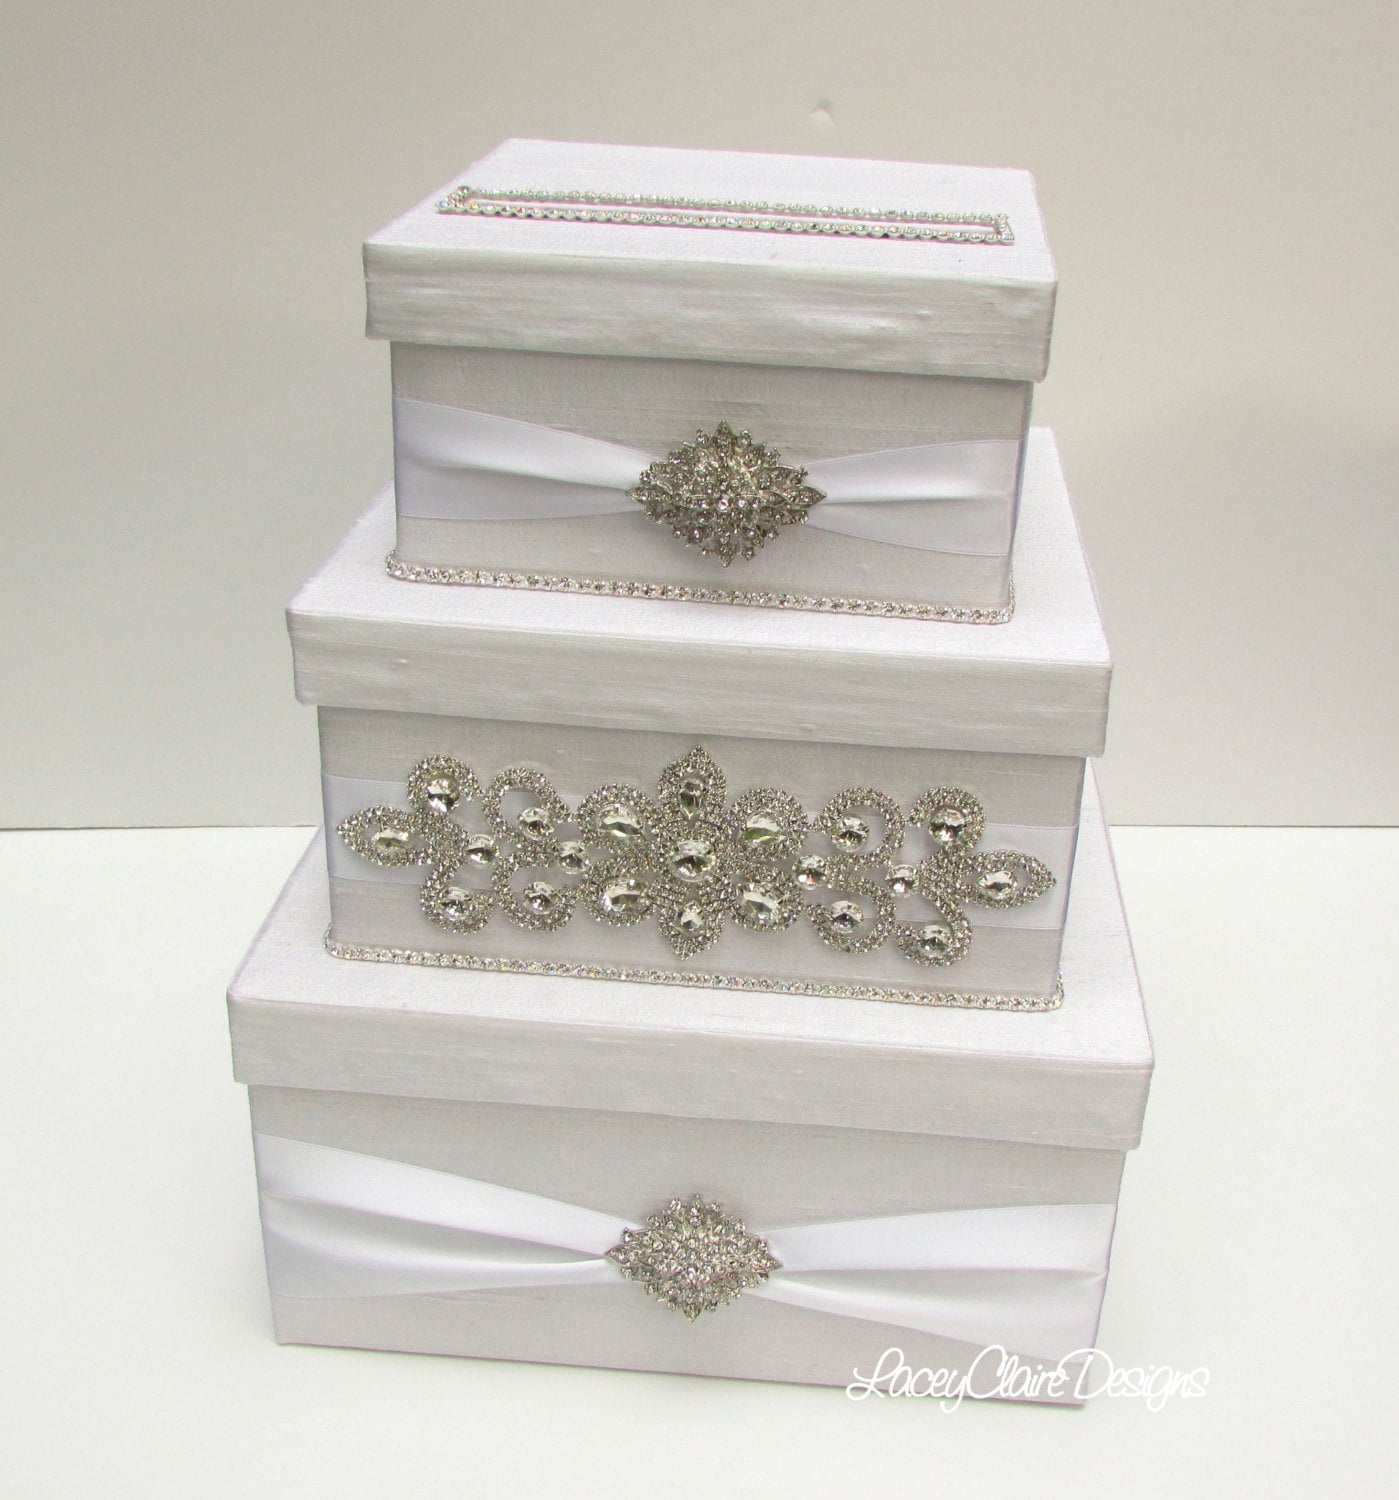 Card Box for Wedding Event Card Box Personalized Card Box